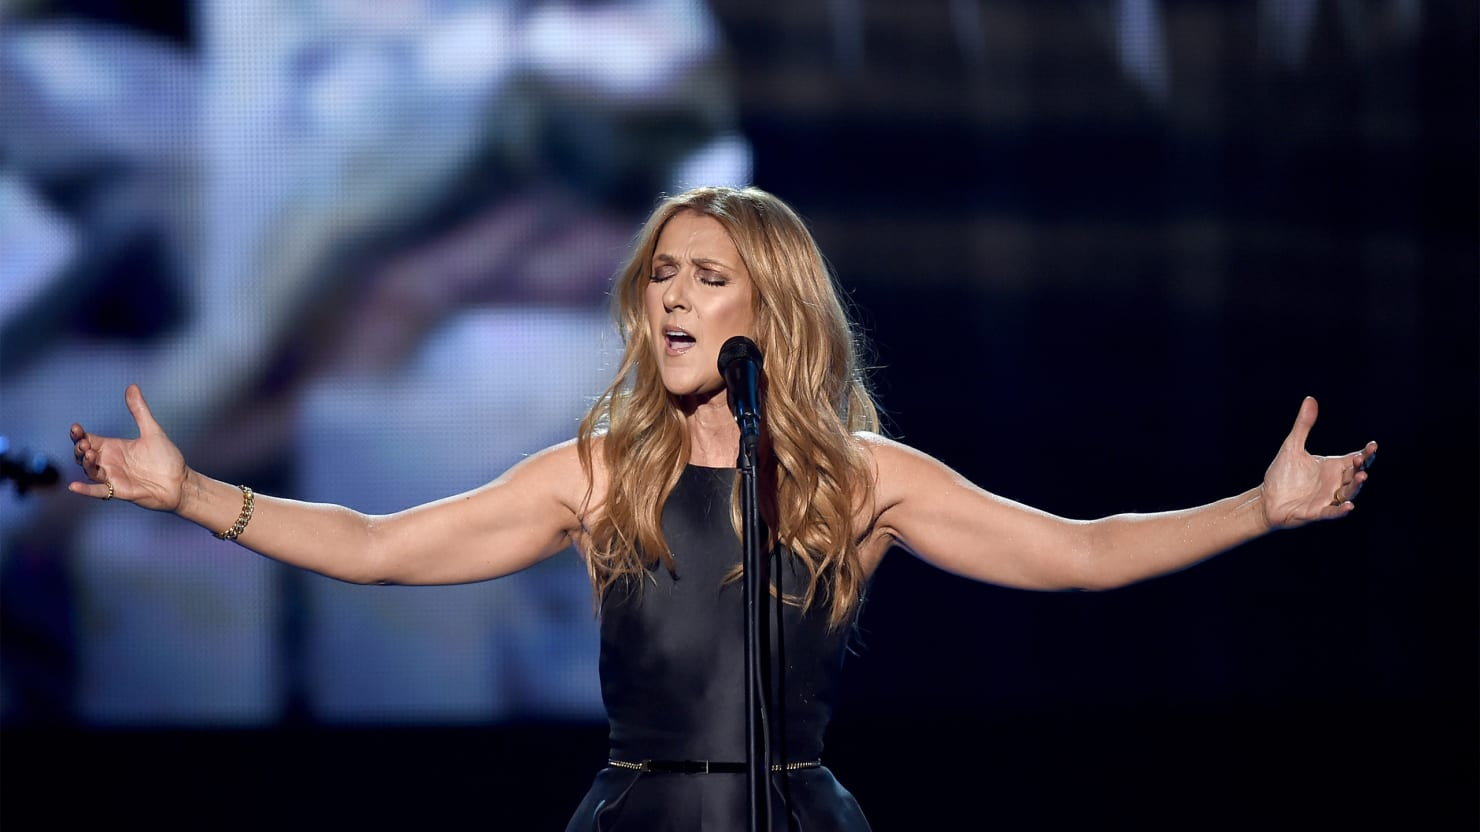 Celine Dion's Moving Edith Piaf Tribute to Paris at the AMAs